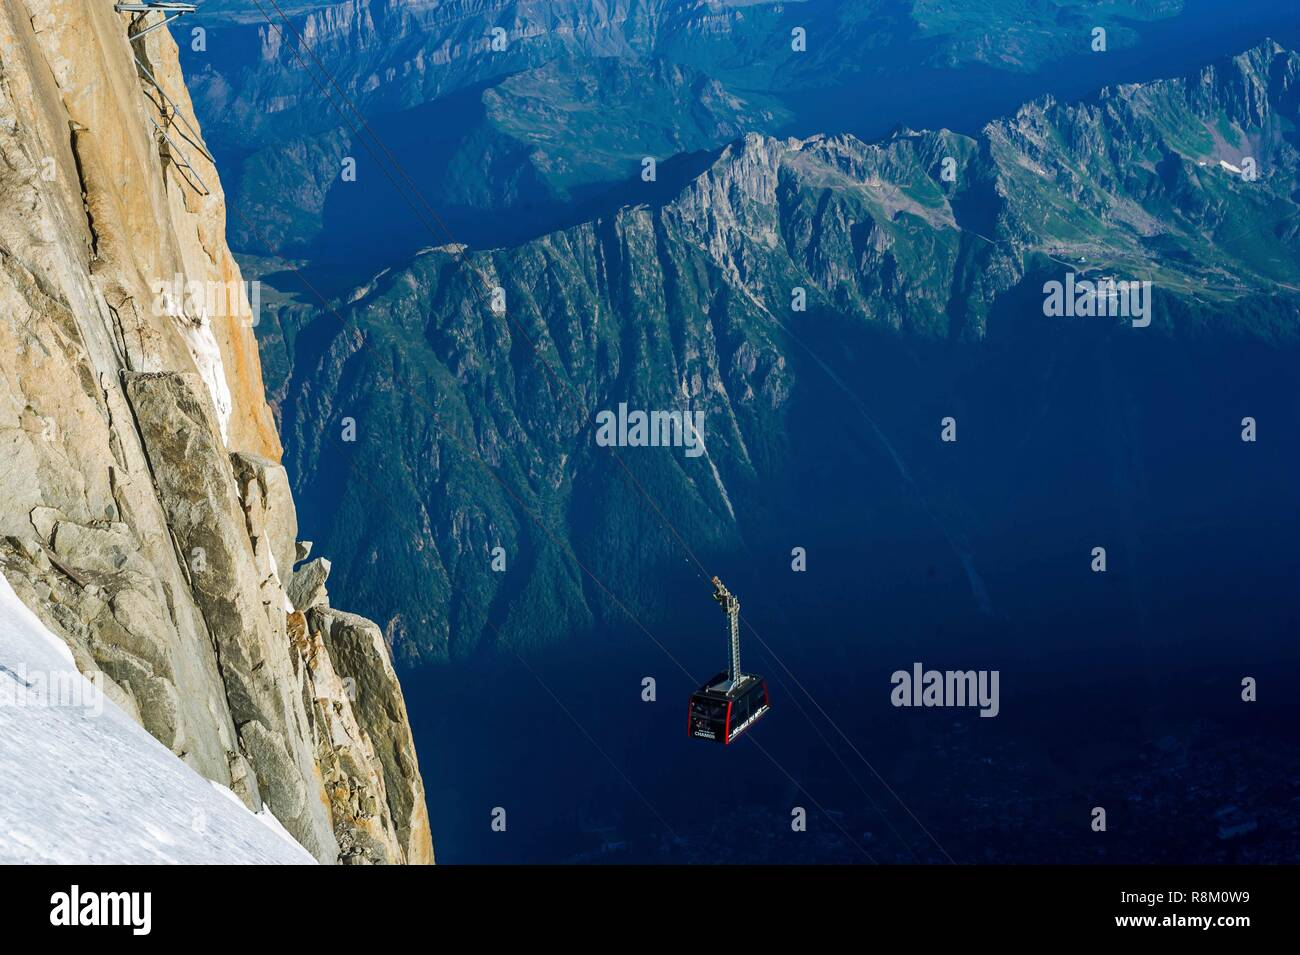 France, Haute-Savoie, Chamonix-Mont-Blanc, arrival at the summit station of the Aiguille du Midi cable car, with Aiguilles Rouges in the backdrop - Stock Image